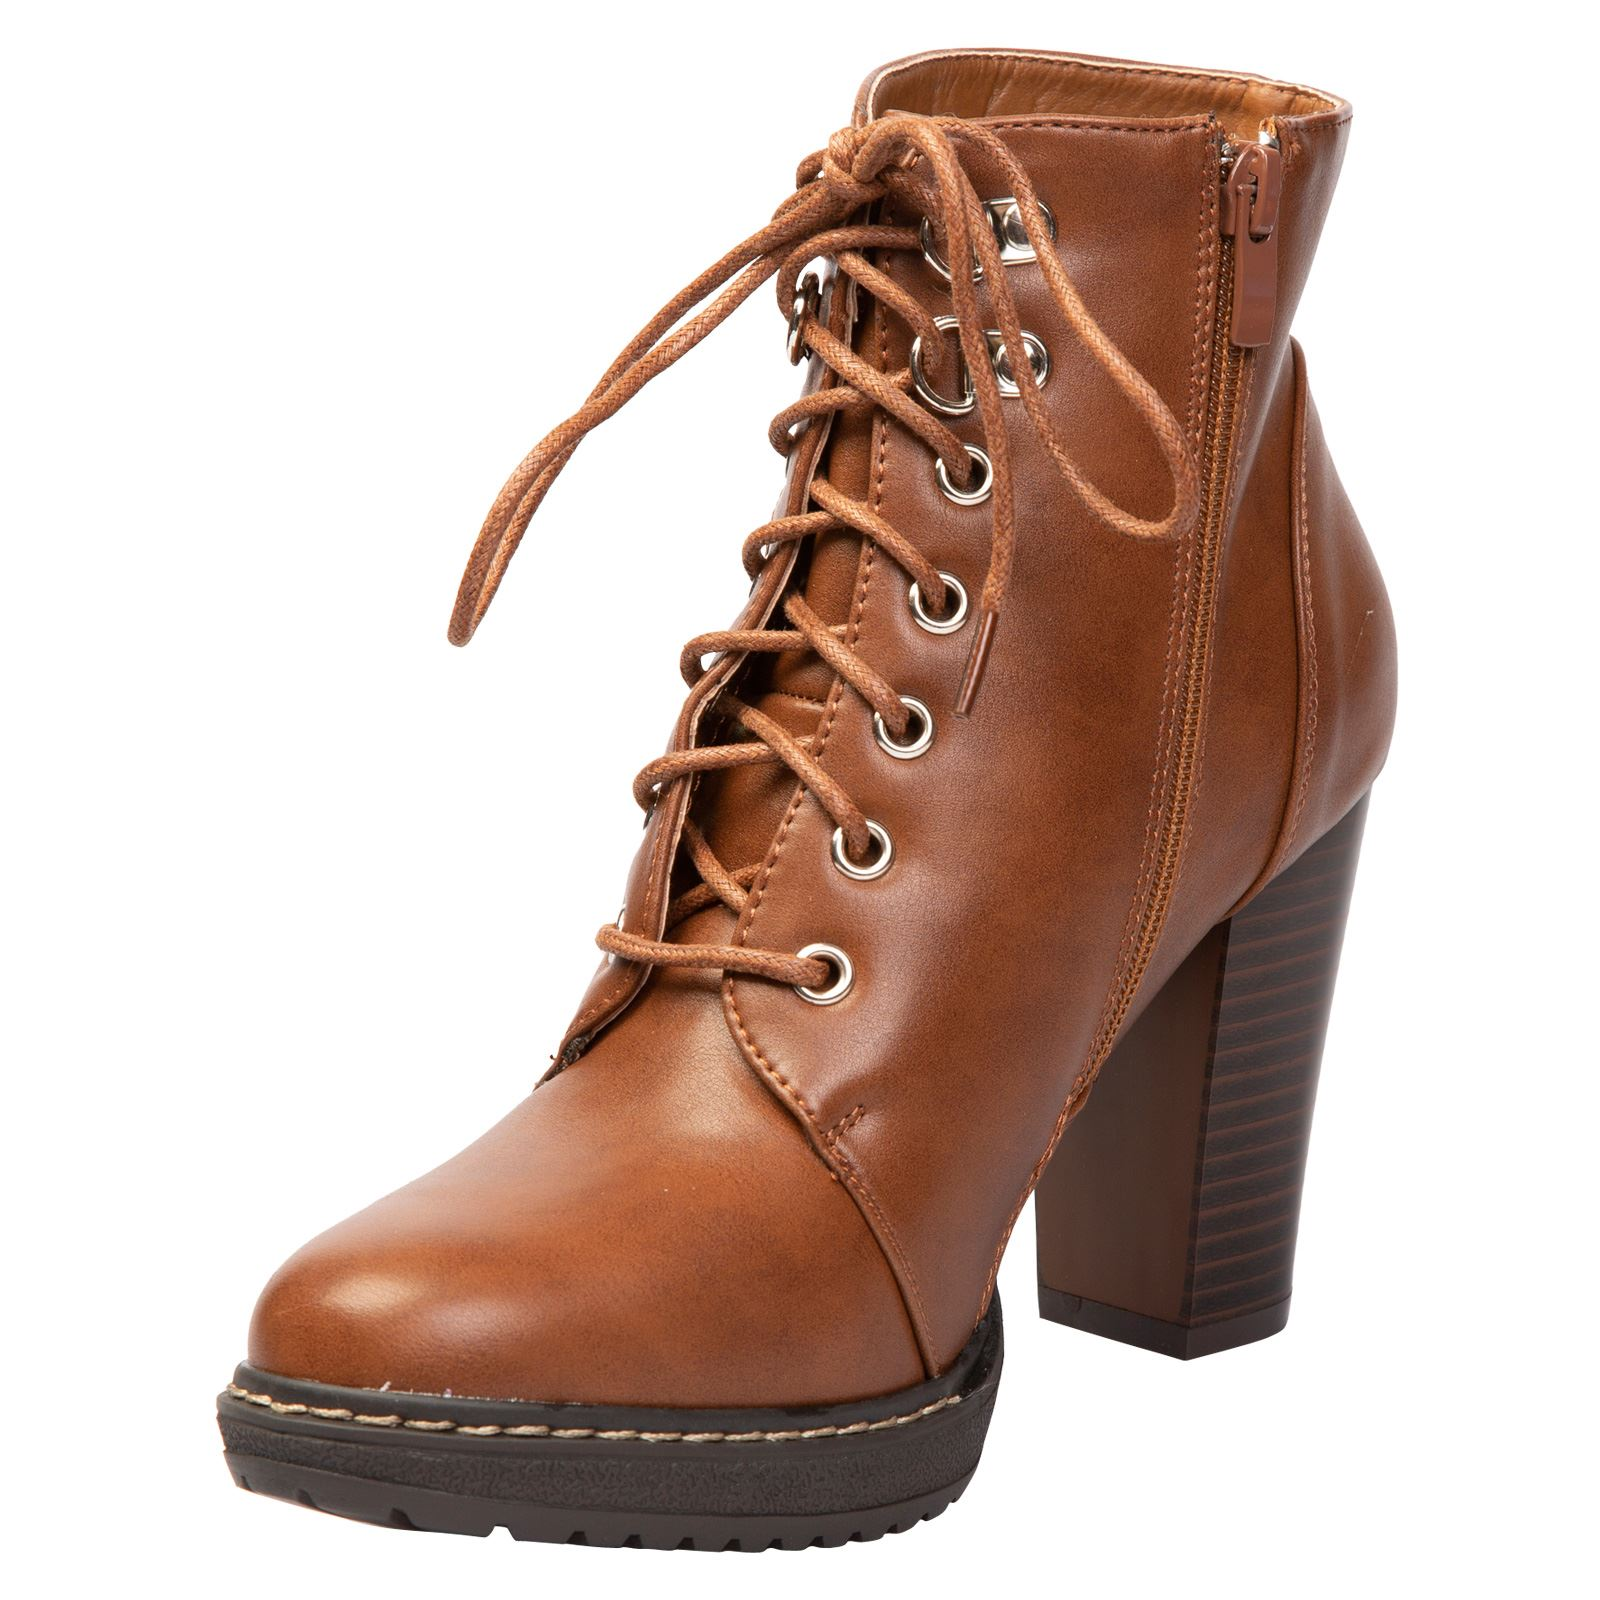 Reese-Womens-High-Block-Heels-Lace-Up-Ankle-Boots-Combat-Platform-Shoes-Size-New